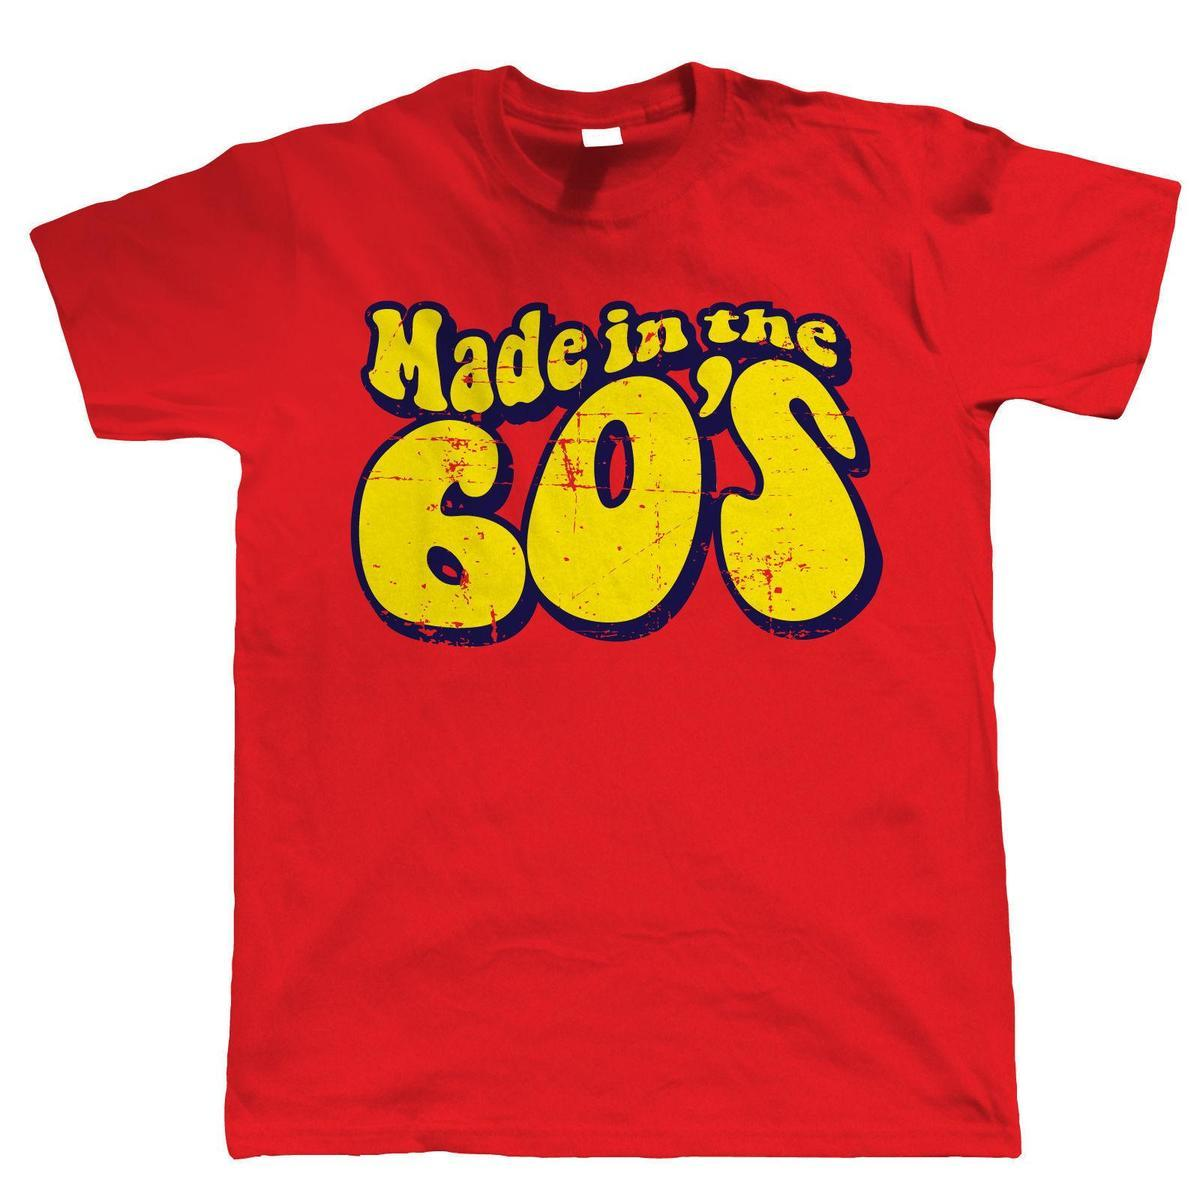 Made In The 60s Mens Funny 50th Birthday T Shirt Tee Designs Neck Shirts From Yuxin009 138